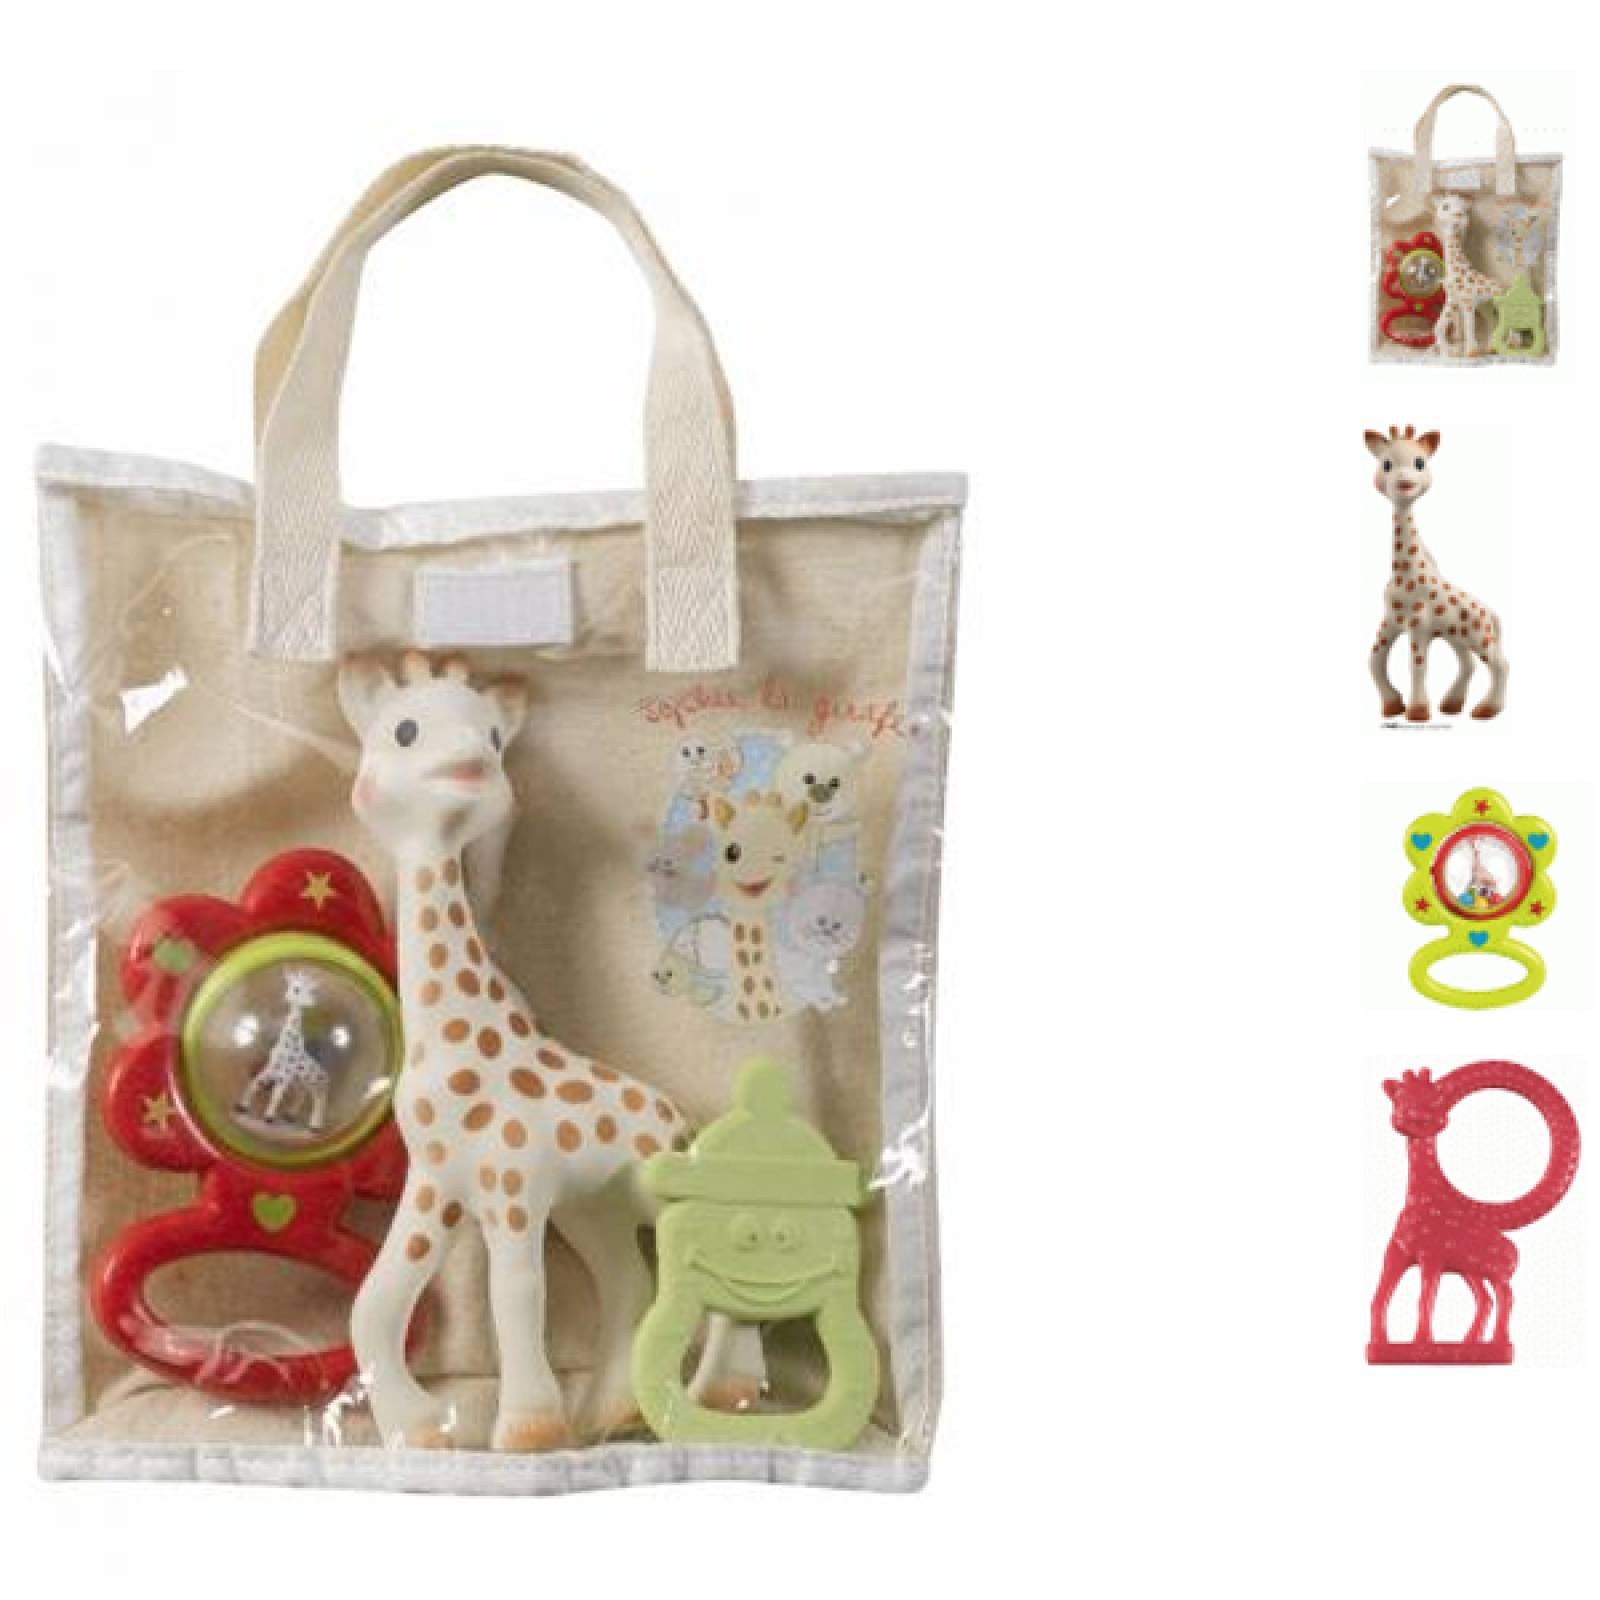 Sophie the Giraffe Gift Bag Set